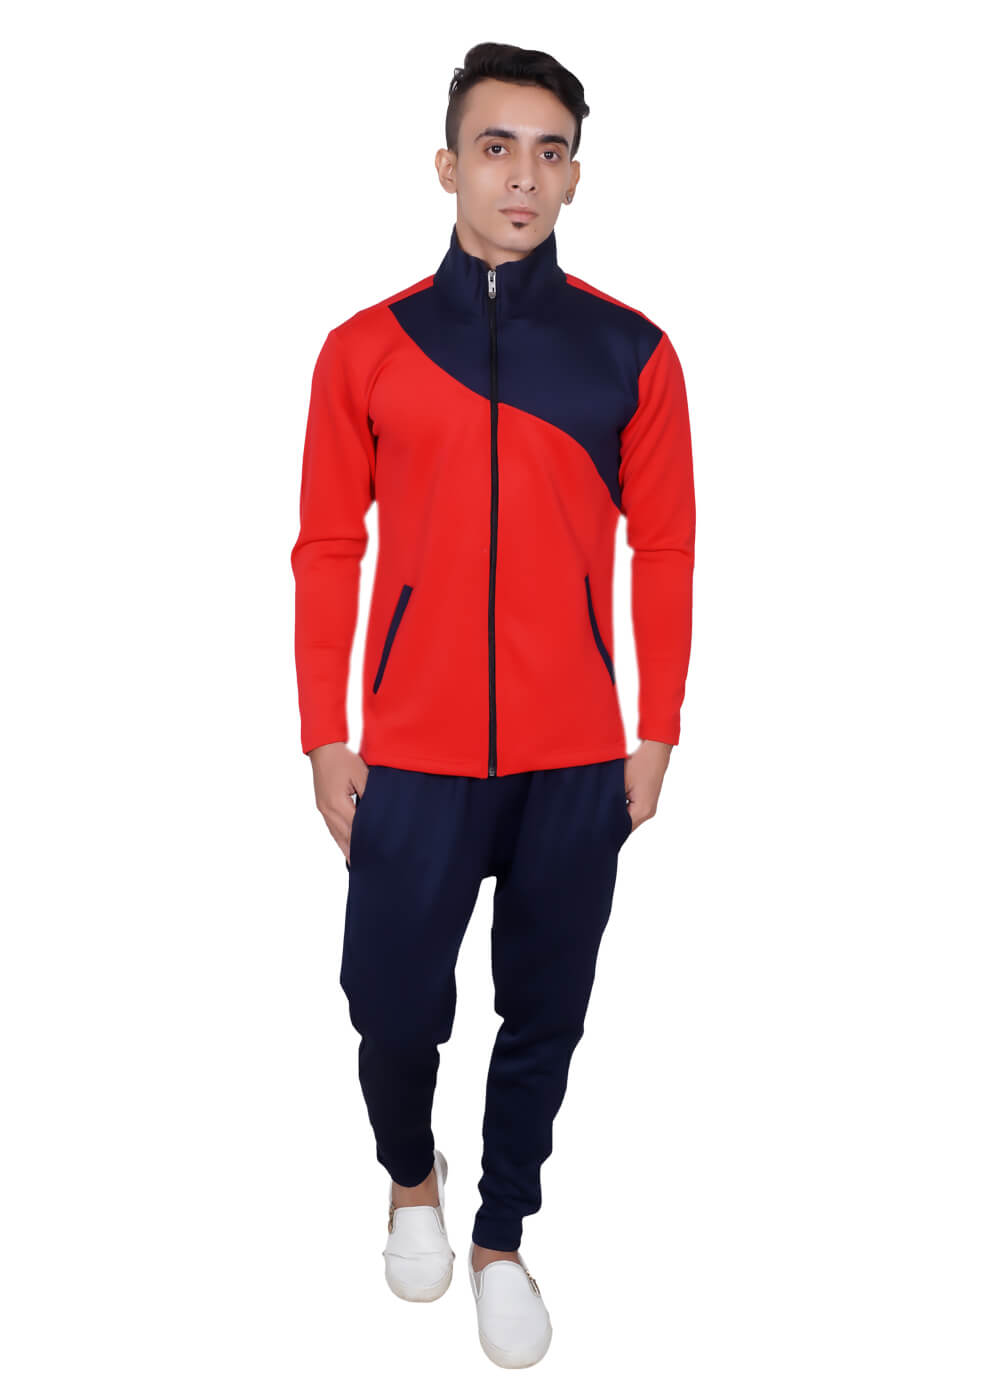 Cheap Tracksuits Manufacturers in Jalandhar in Azerbaijan